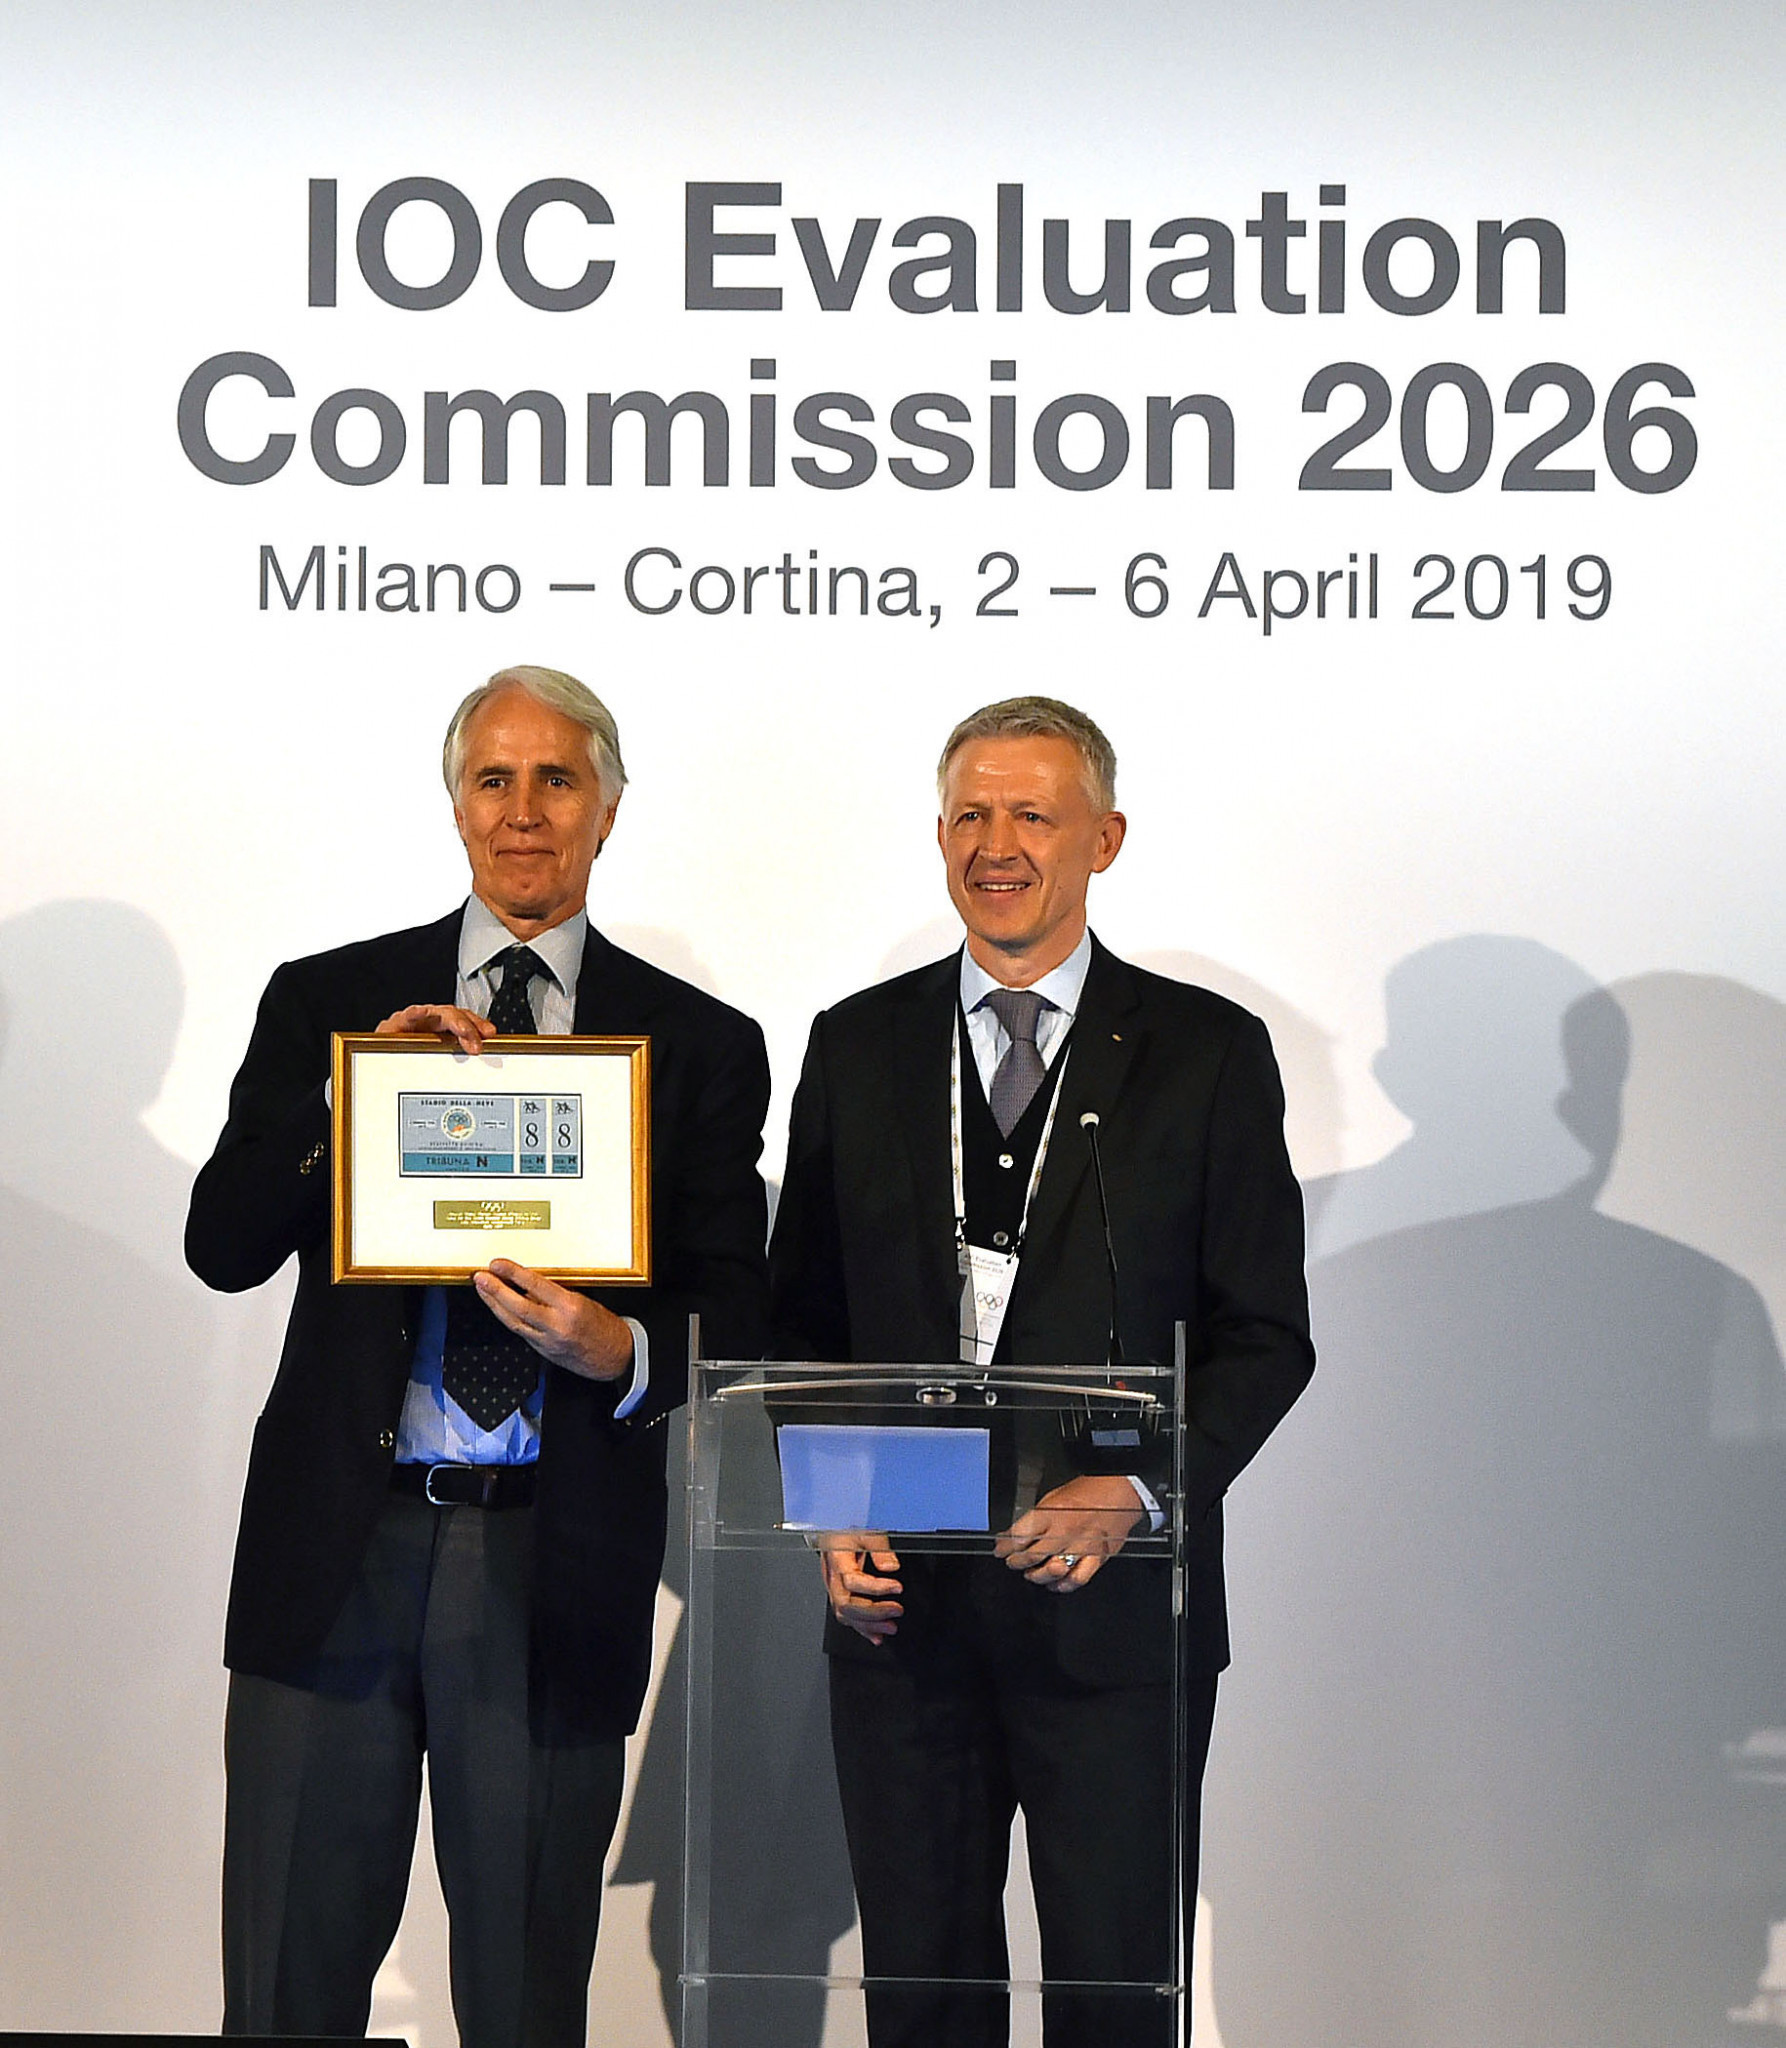 Presents exchanged as IOC Evaluation Commission visit to Milan Cortina 2026 comes to an end